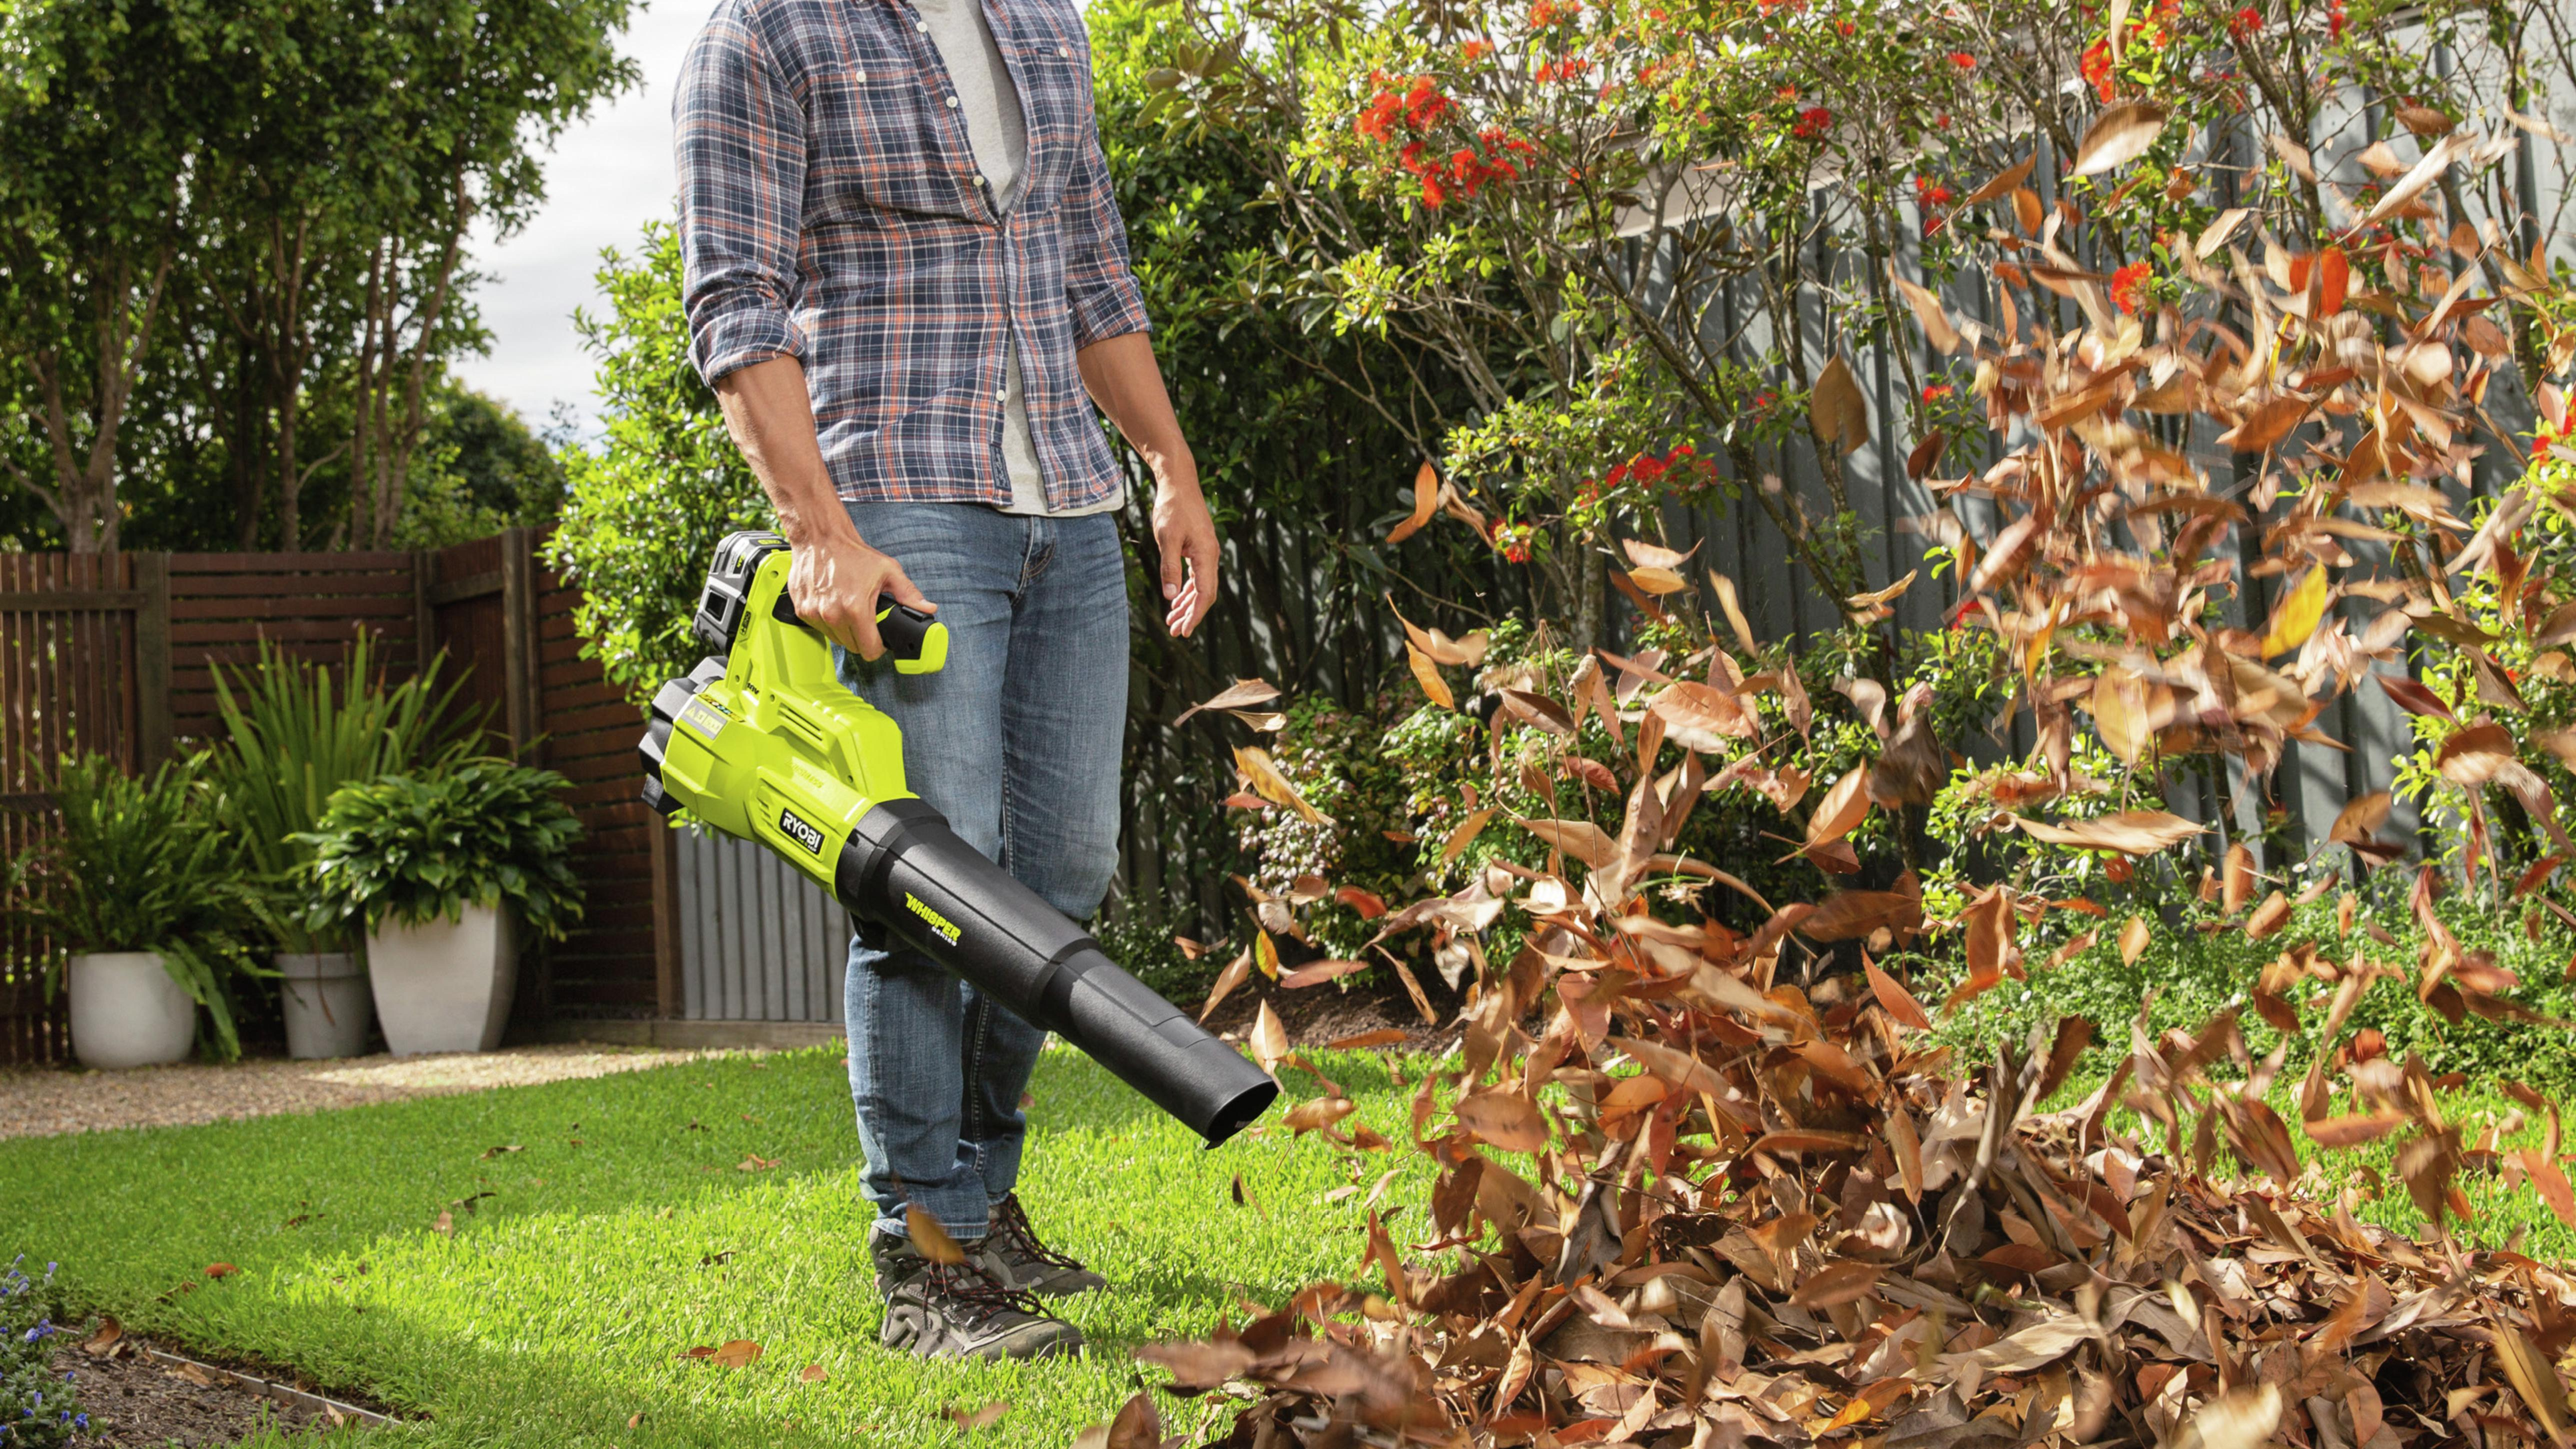 man using leaf blower in garden to move leaves